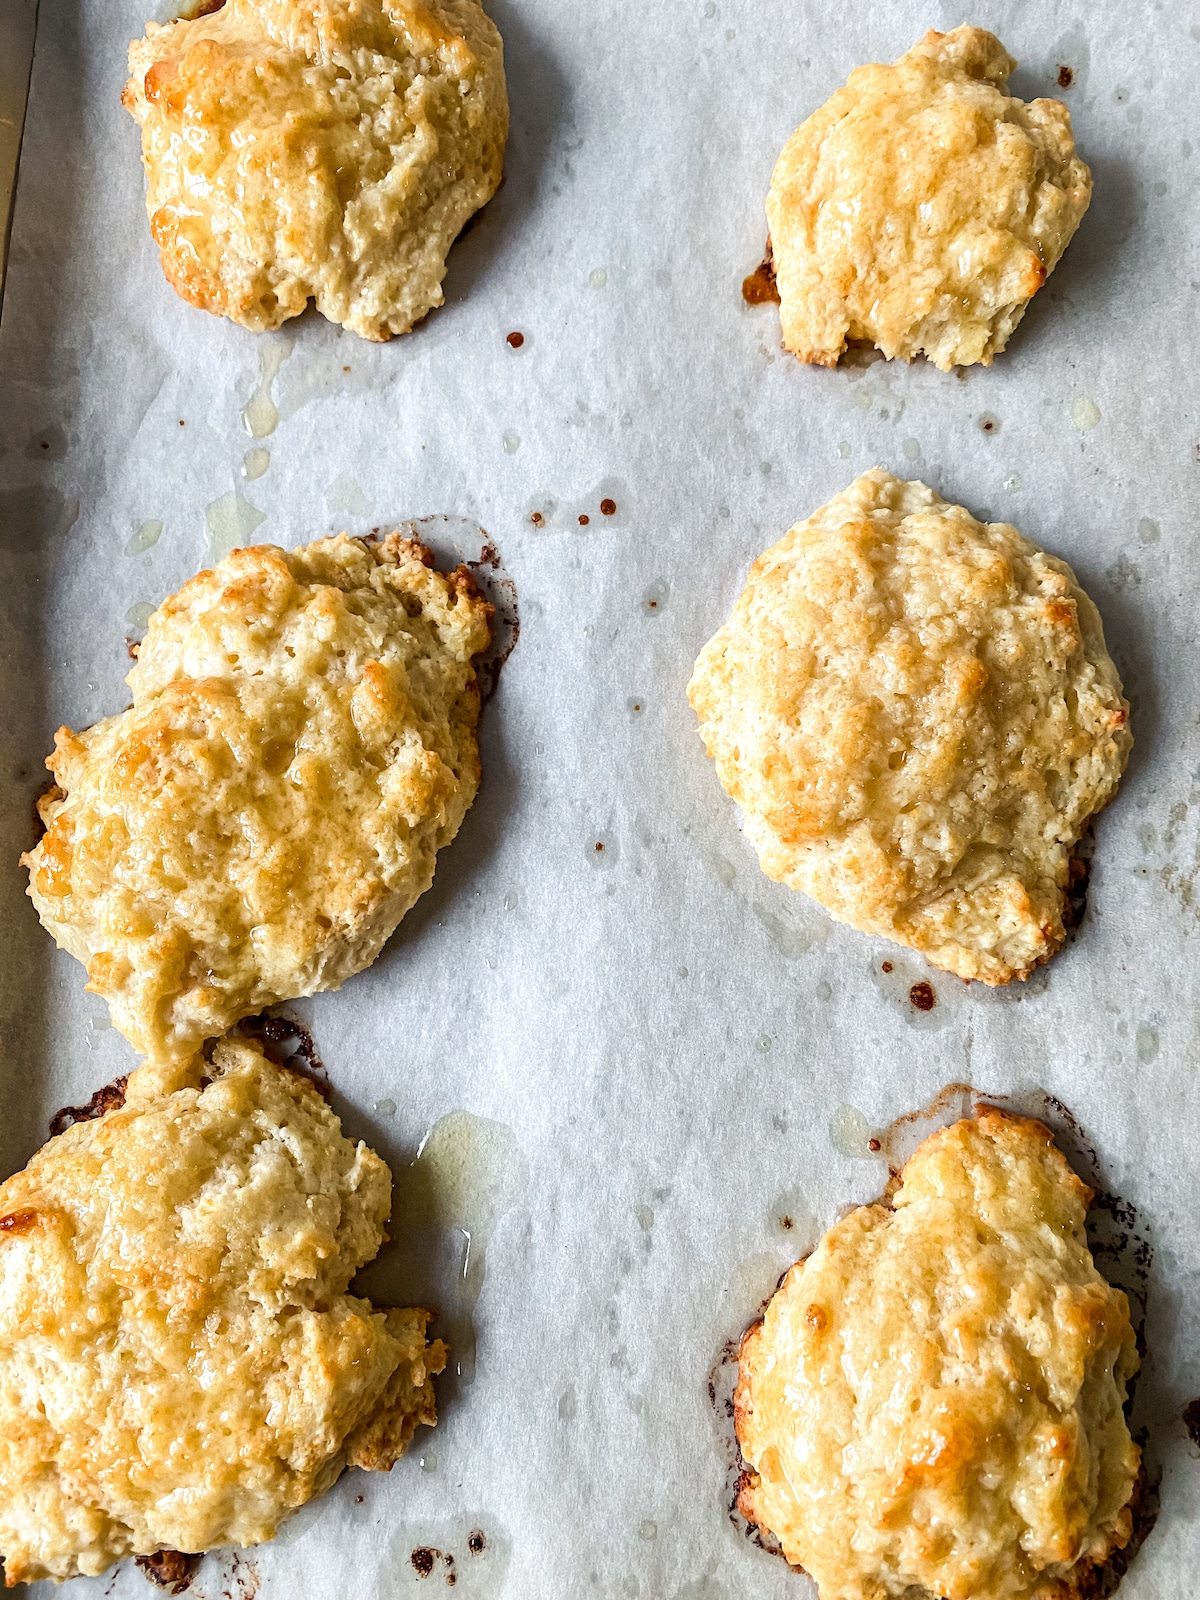 Baked biscuits on parchment lined baking sheet